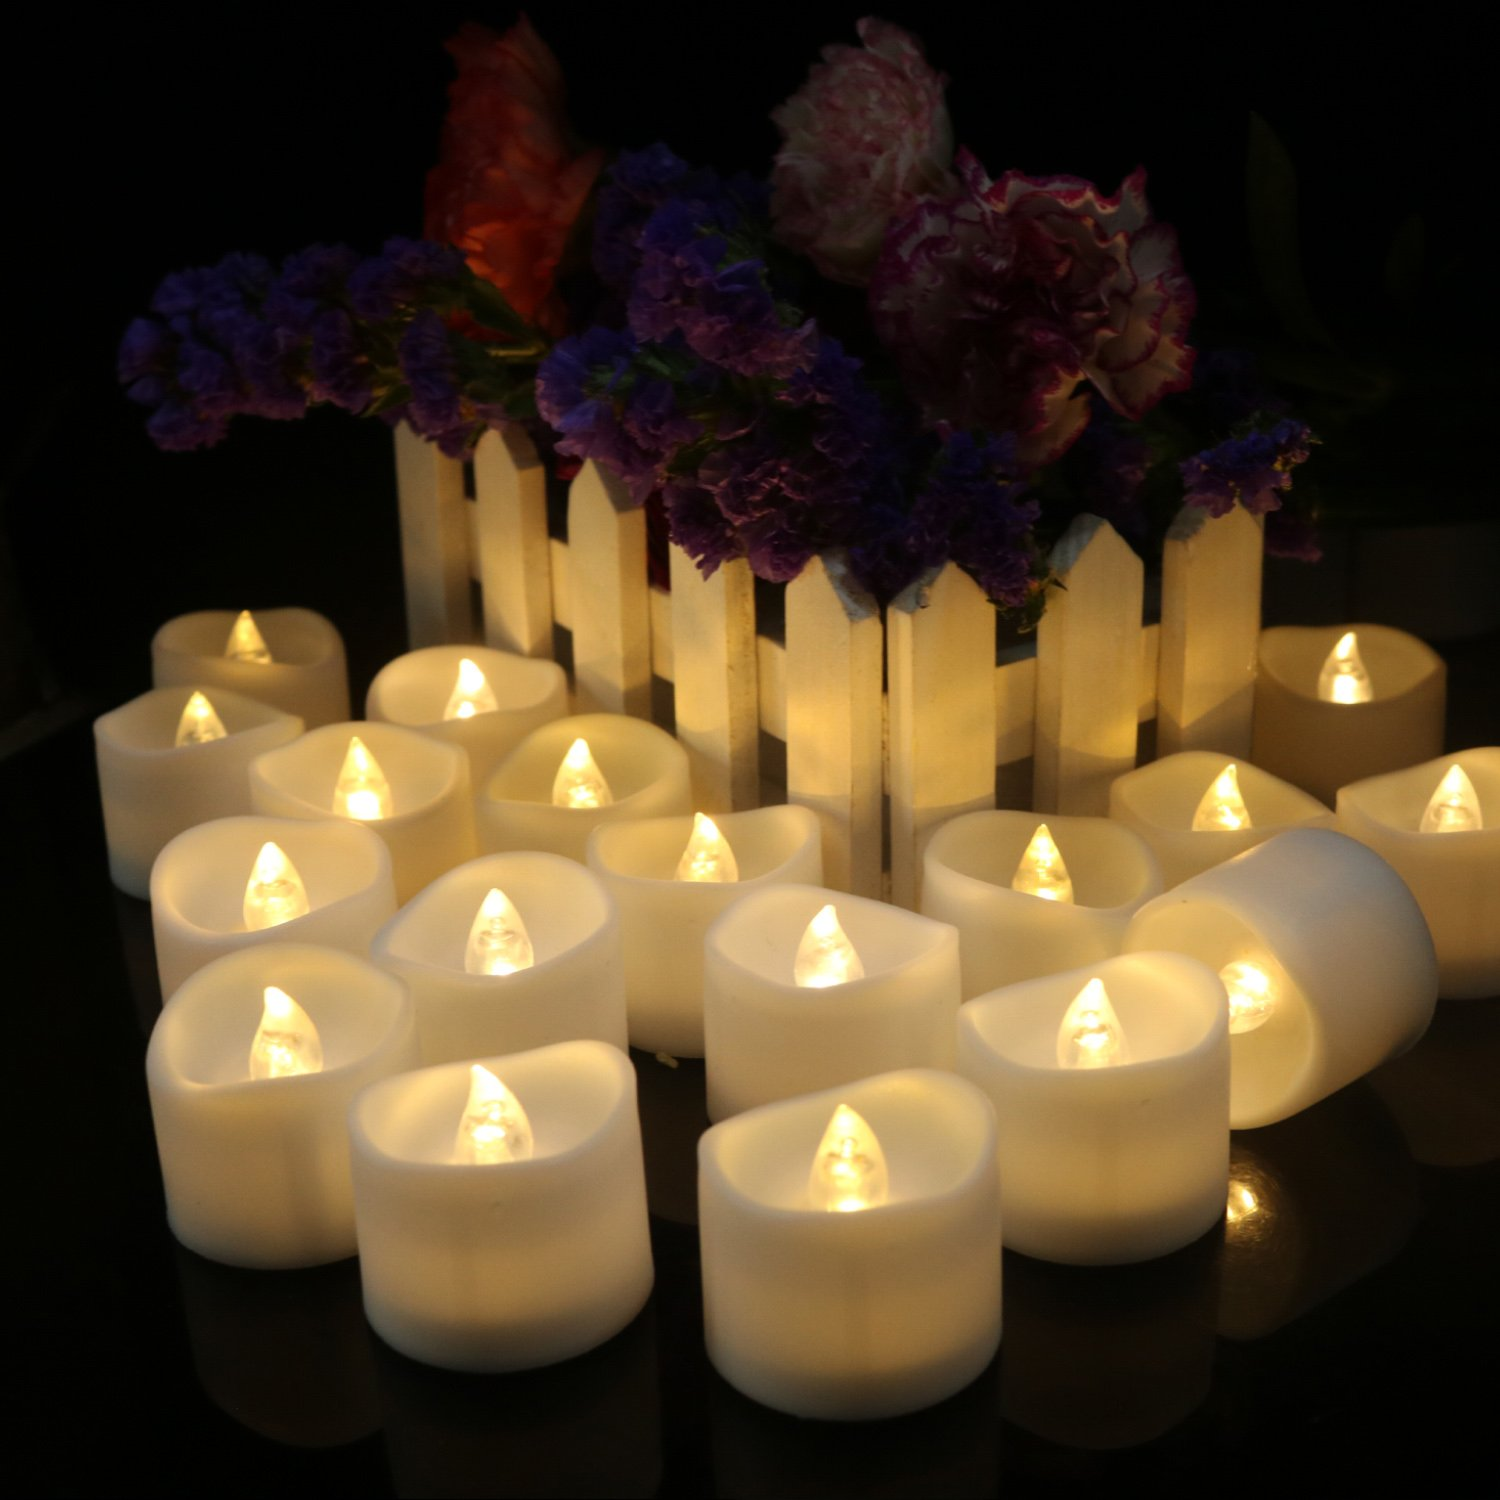 Micandle 12pcs Warm White Flameless Candles With Timer Function, LED Tea Lights Candles, Flickering Flameless Tealight with Timer, 6 Hours on and 18 Hours Off in 24 Hours Cycle, Battery Powered Candles for Wedding, Party and Birthday